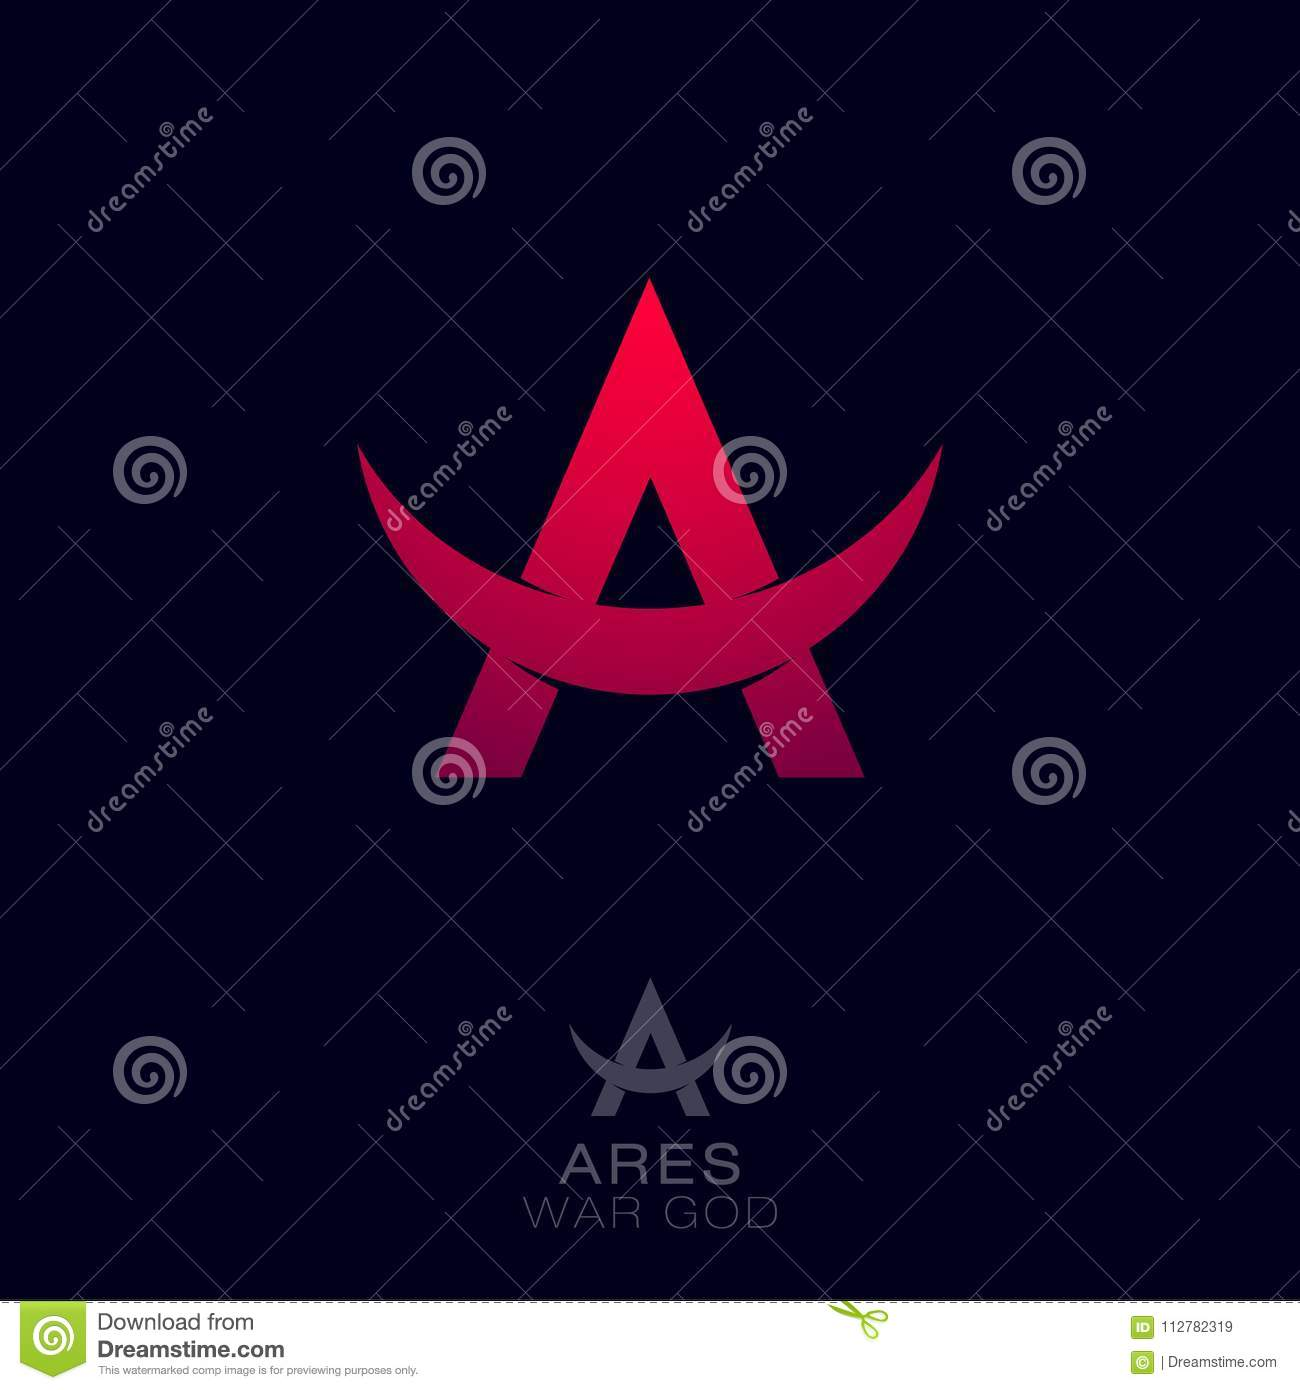 Ares Logo Greek War God Of The Emblems Red Letter A With Bull